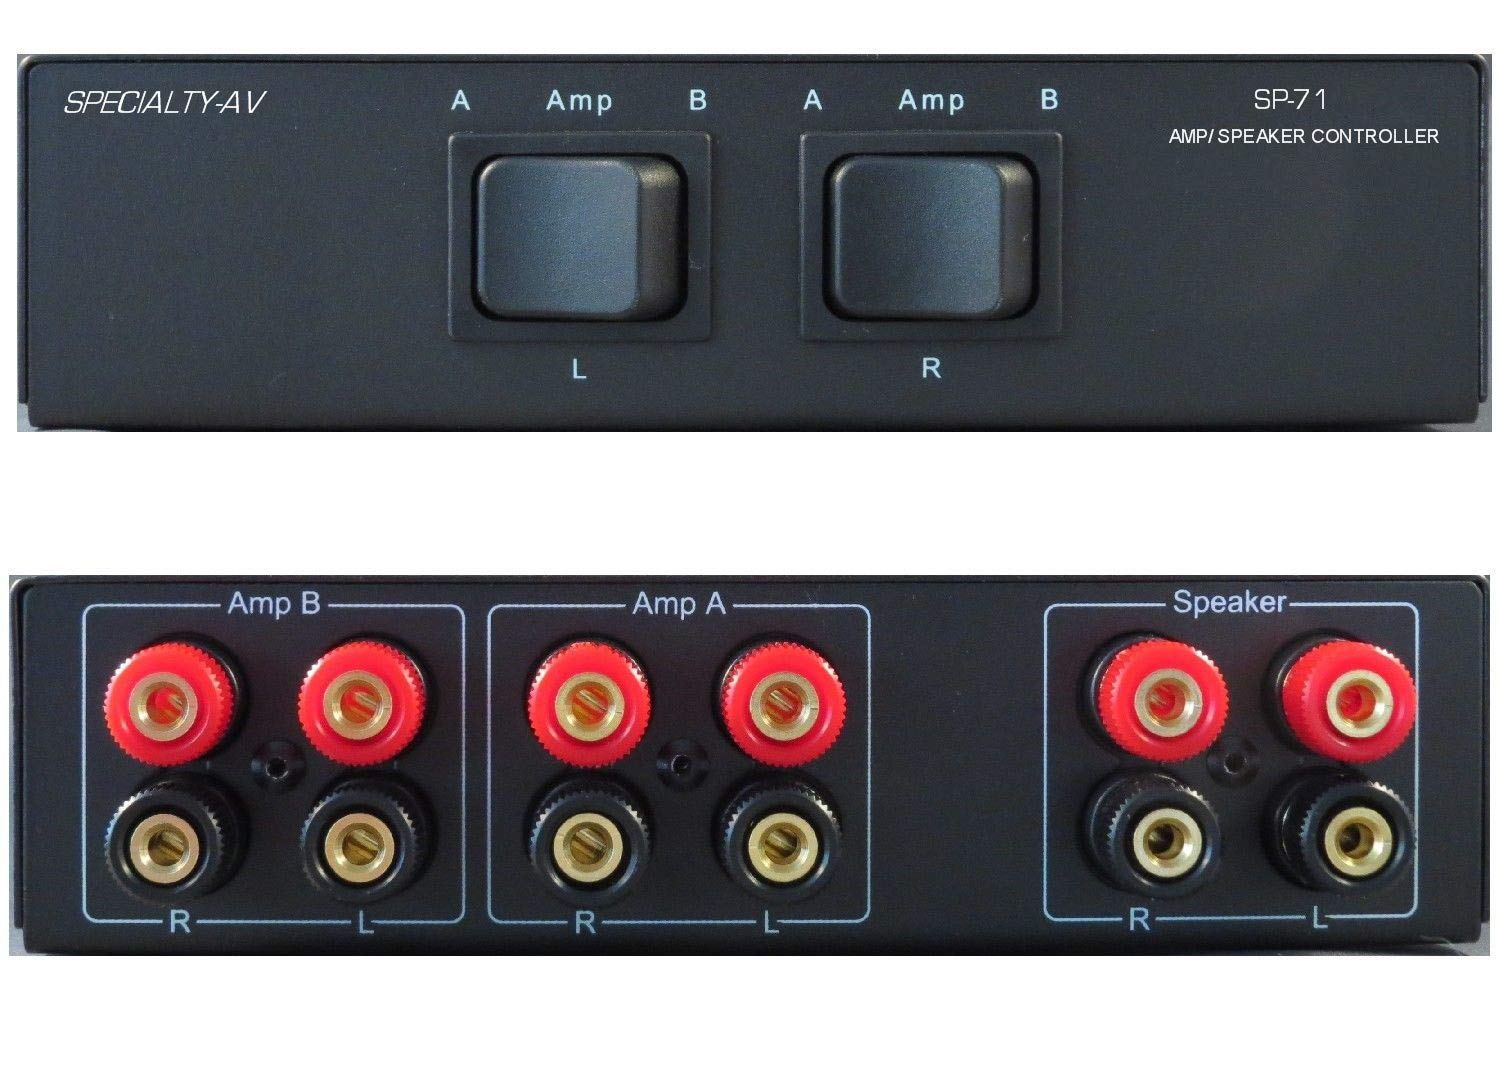 2-Way Amp Amplifier Receiver to 1 One Pair of Speakers Selector Switch Switcher Splitter Combiner